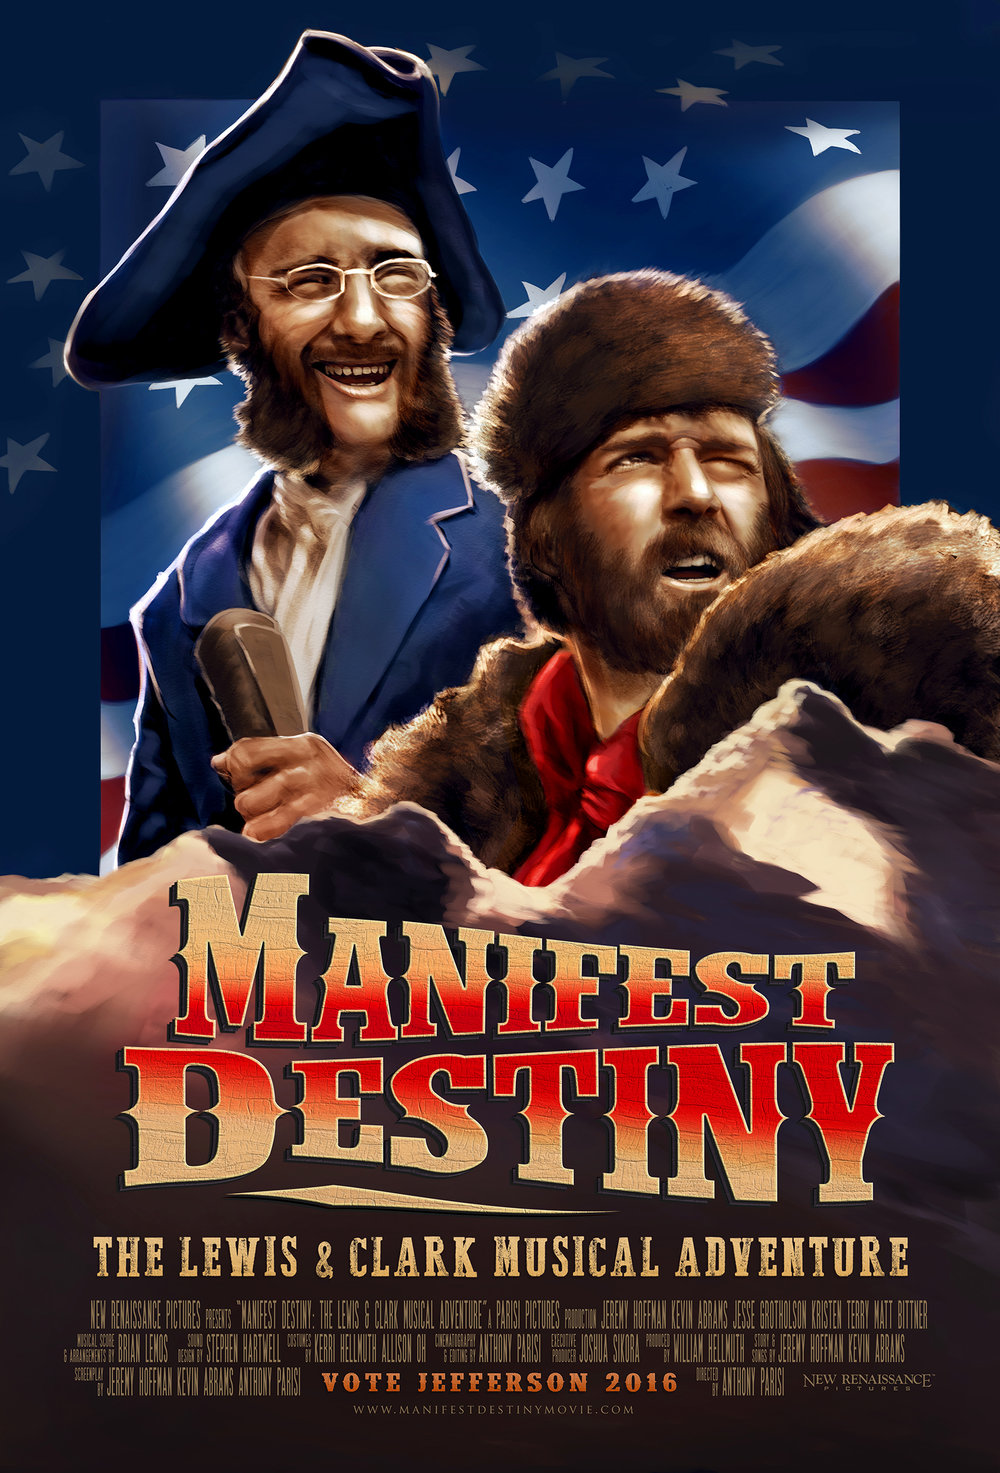 Manifest Destiny - The Lewis & Clark Musical Adventure (2016) - With exaggerated, eye-popping style,this tall tale of Lewis and Clark becomes a subversive spoof of American ego.Follow the explorers out on the trail as they discover that destiny may be anything but manifest.Based on a cult web series, this feature-length, musical allegory was hailed as